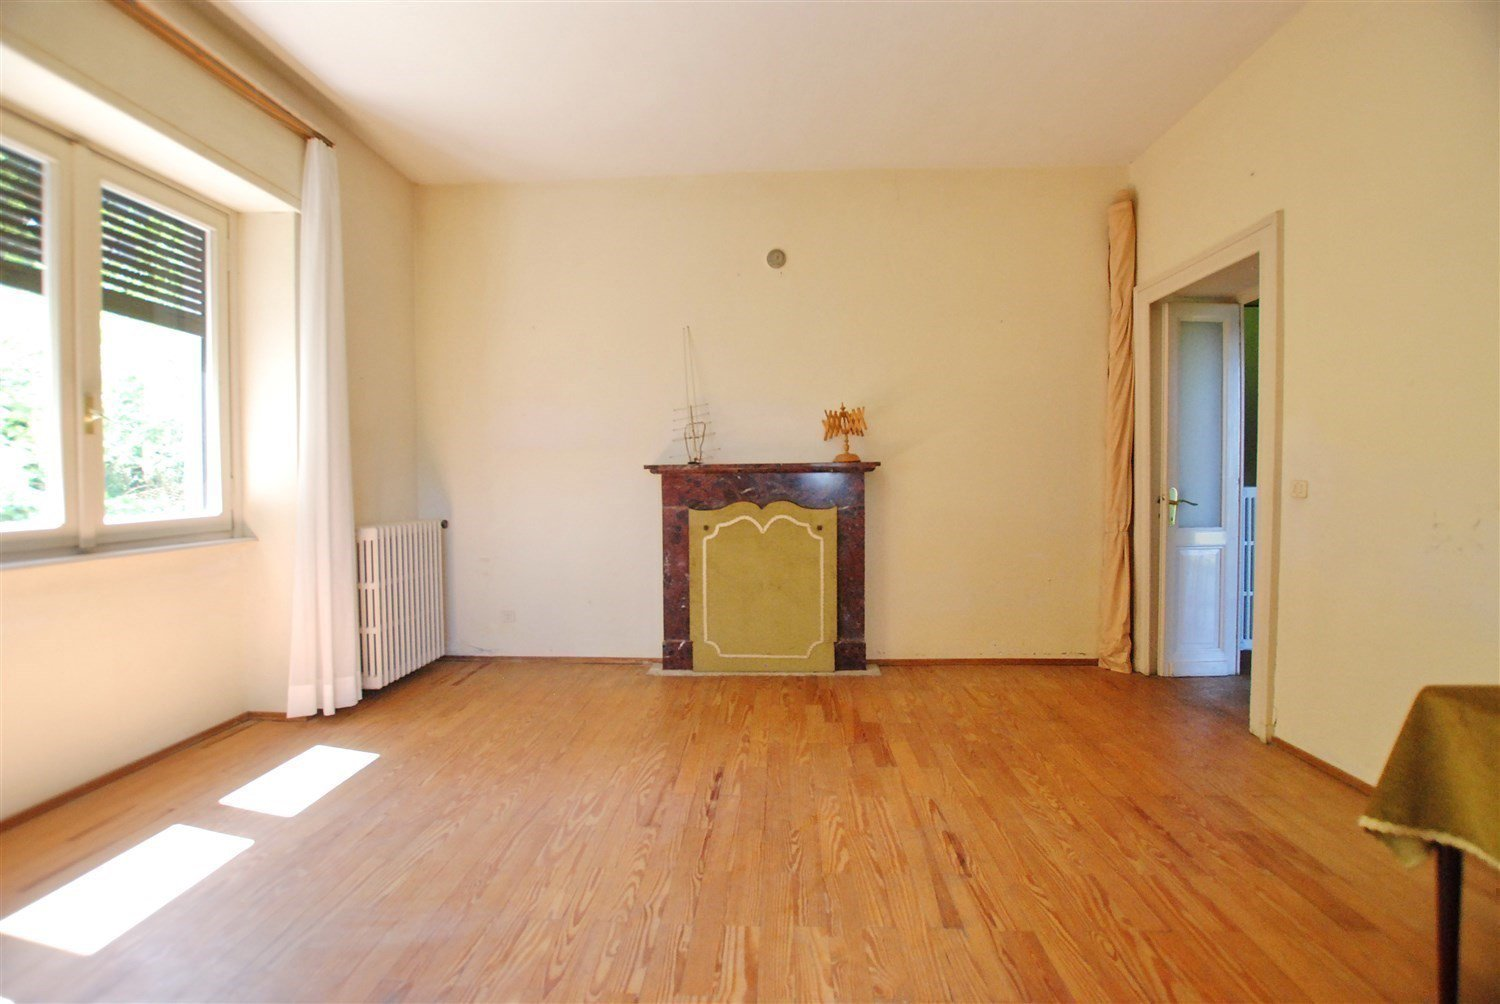 Age villa to be restored for sale in the centre of Gignese- living room